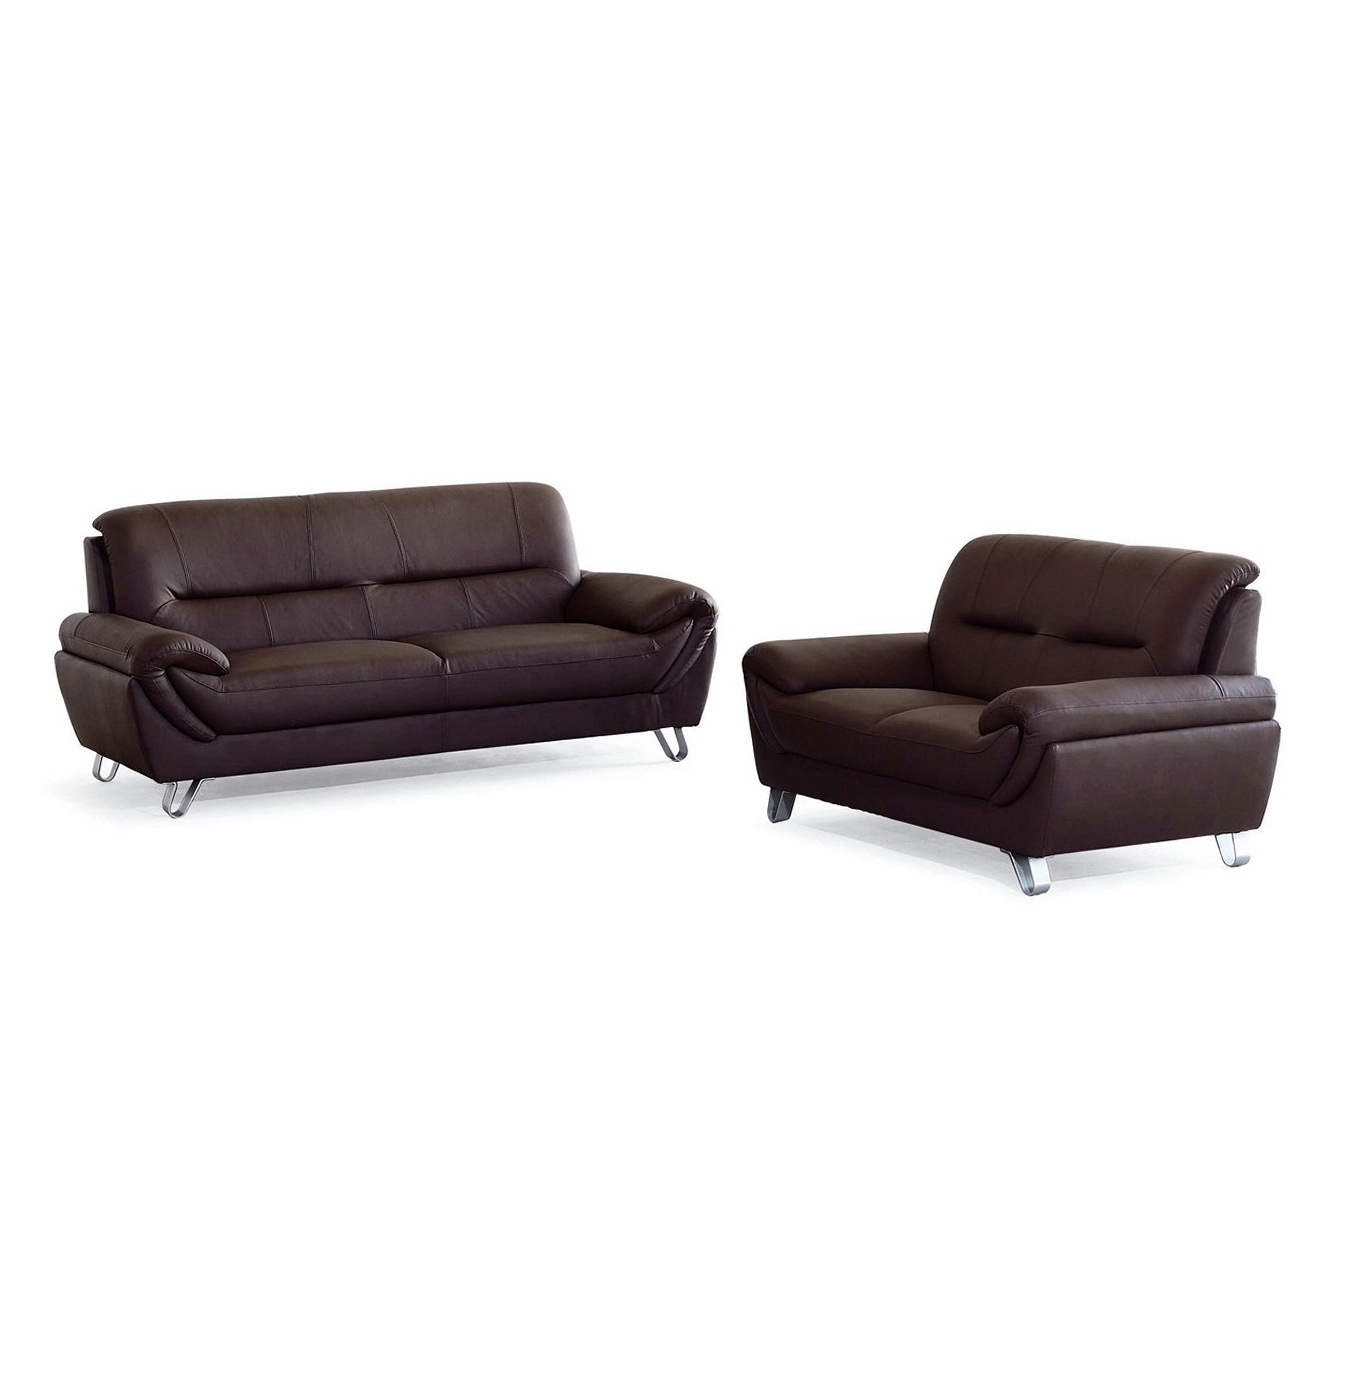 Sofa and loveseat sets 100 sofa loveseat sets simmons for Budget sofa set